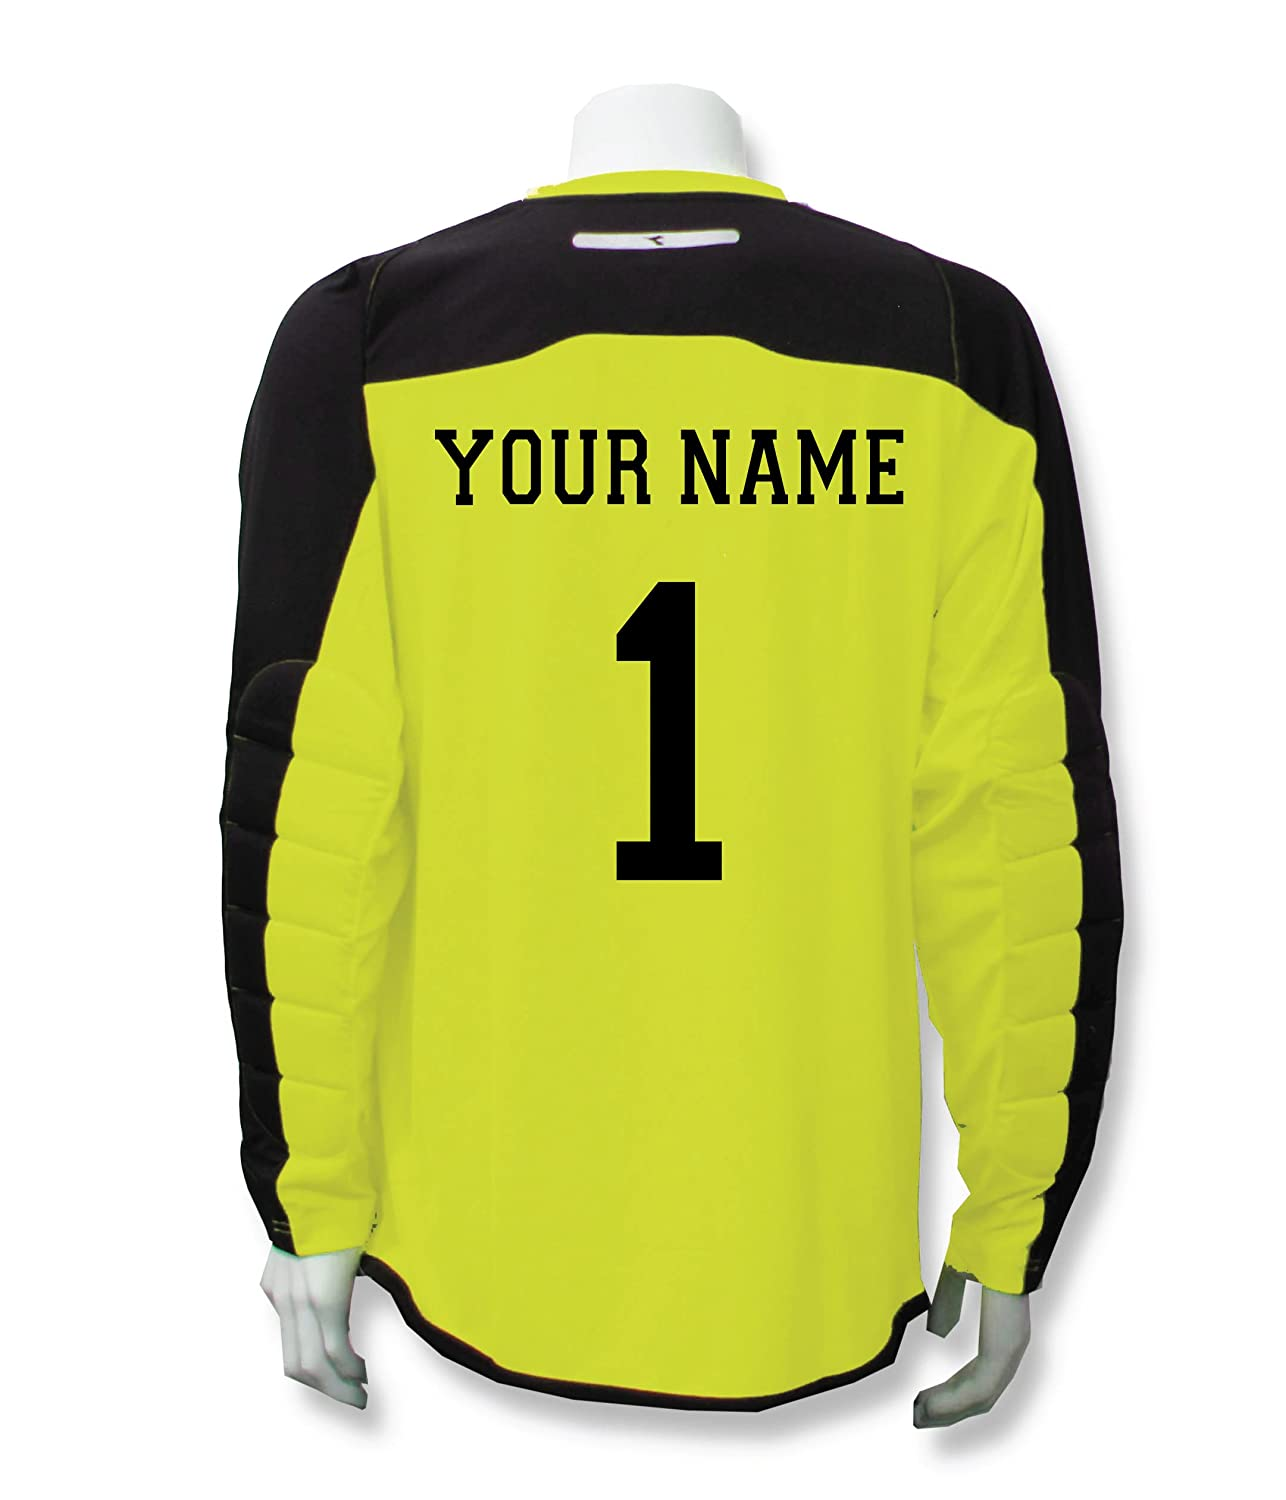 Diadora Enzo Goalkeeper Jersey Personalized with your name and number B01LZ01CYC Youth Medium|Matchwinner Yellow Matchwinner Yellow Youth Medium